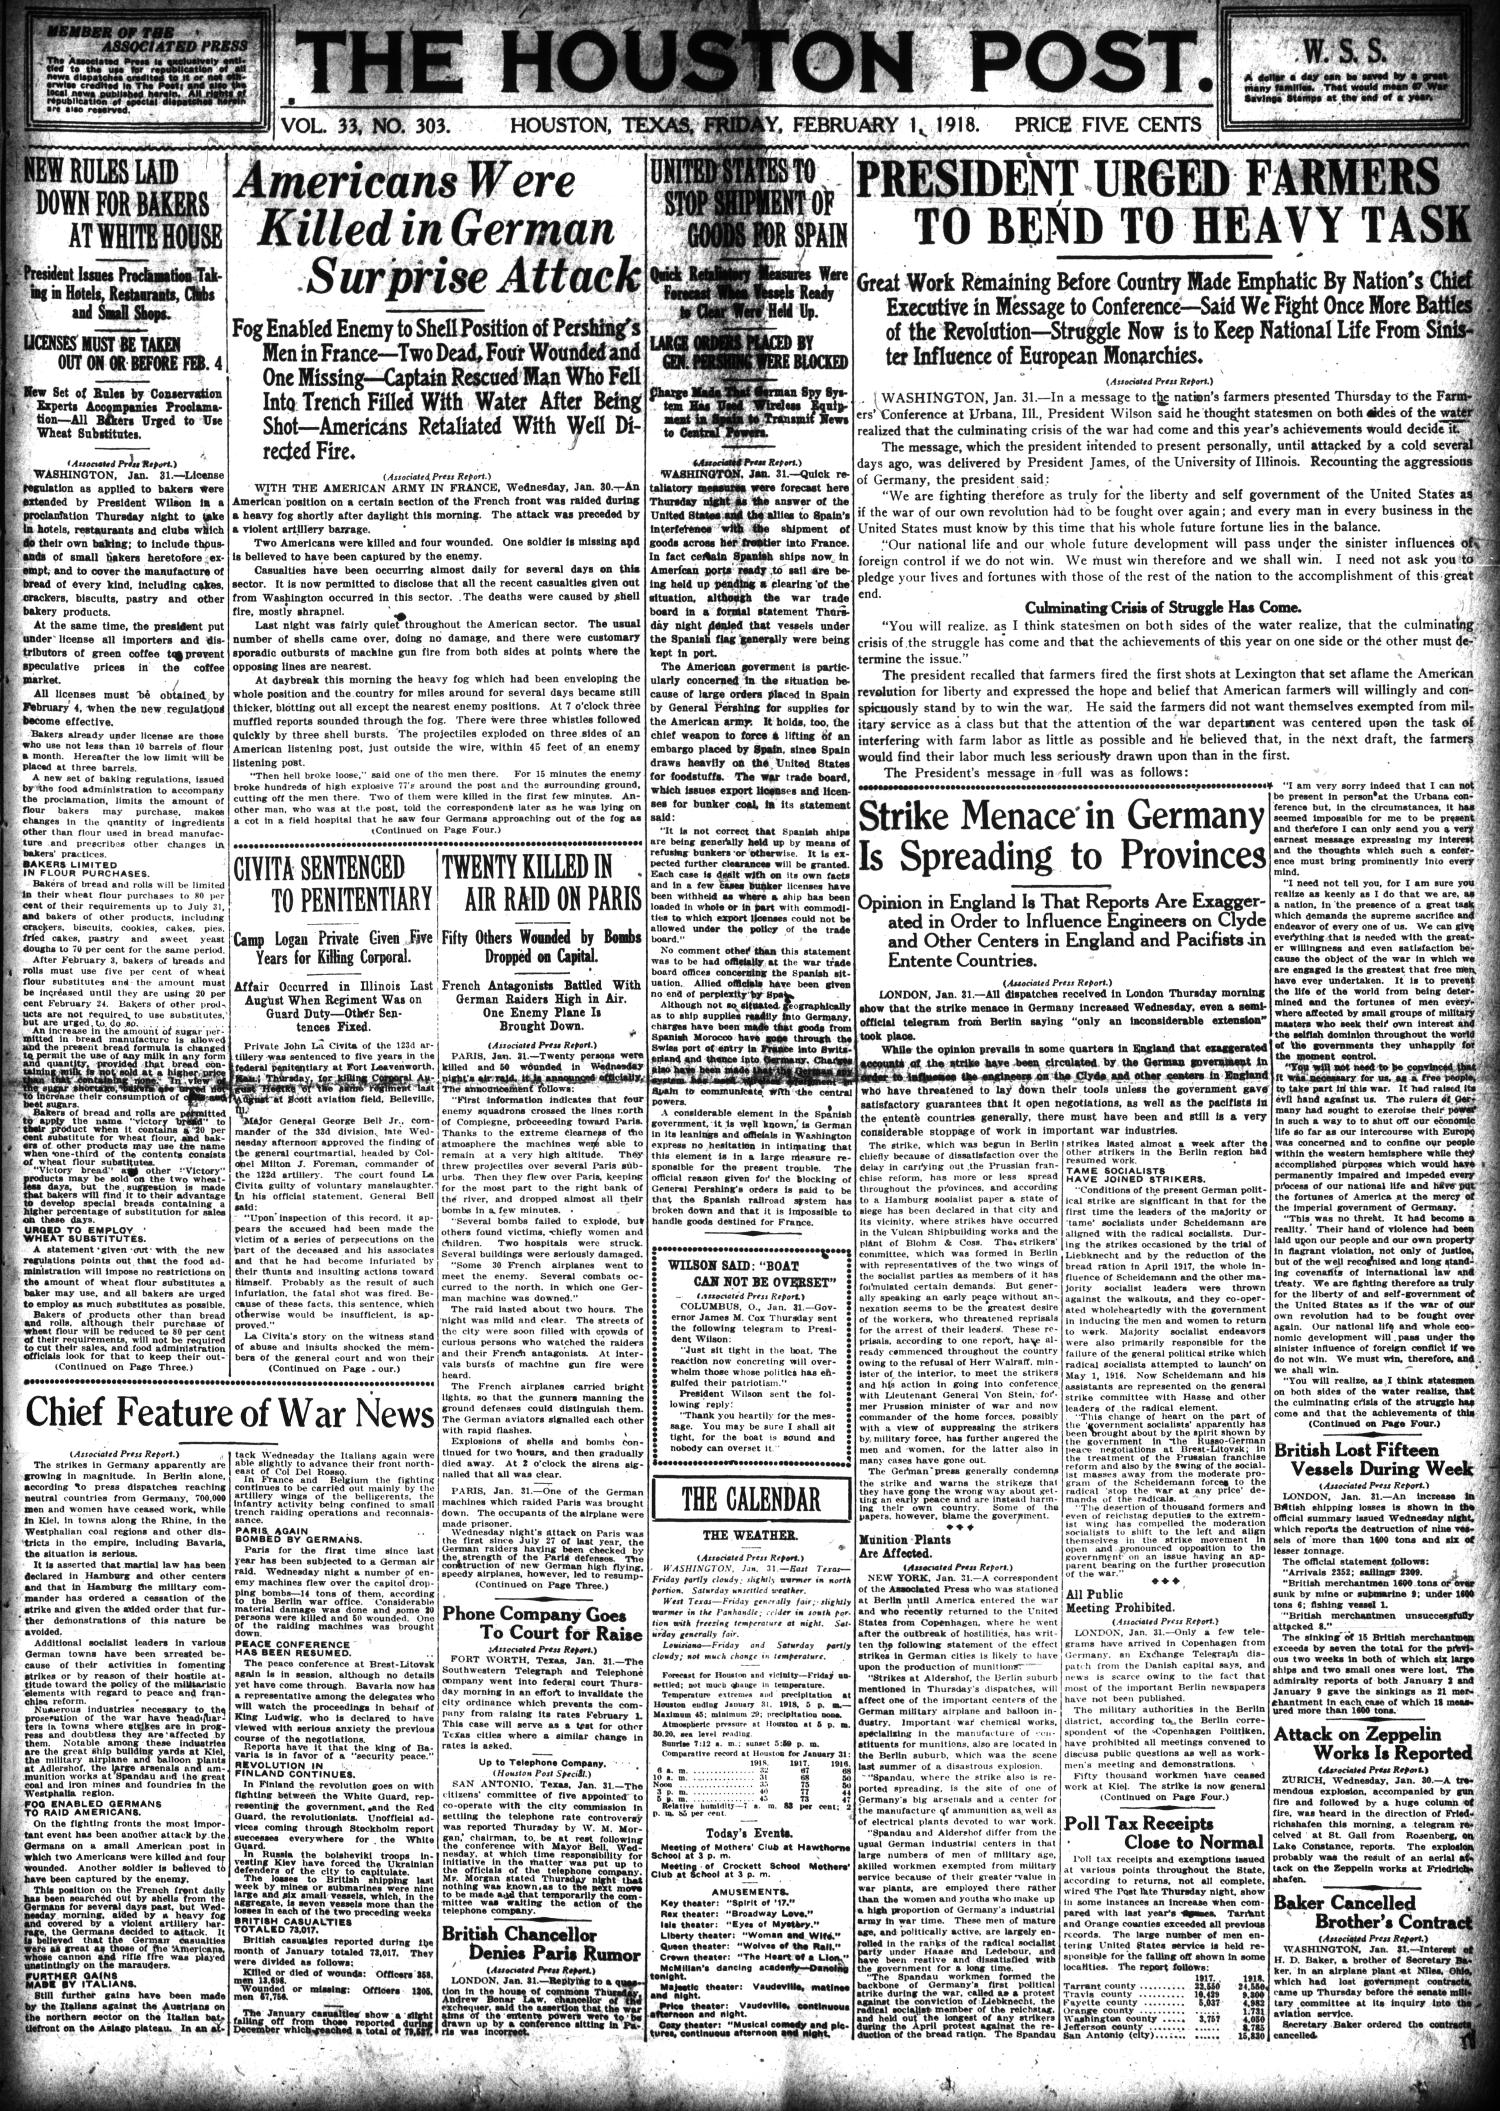 The Houston Post. (Houston, Tex.), Vol. 33, No. 303, Ed. 1 Friday, February 1, 1918                                                                                                      [Sequence #]: 1 of 14